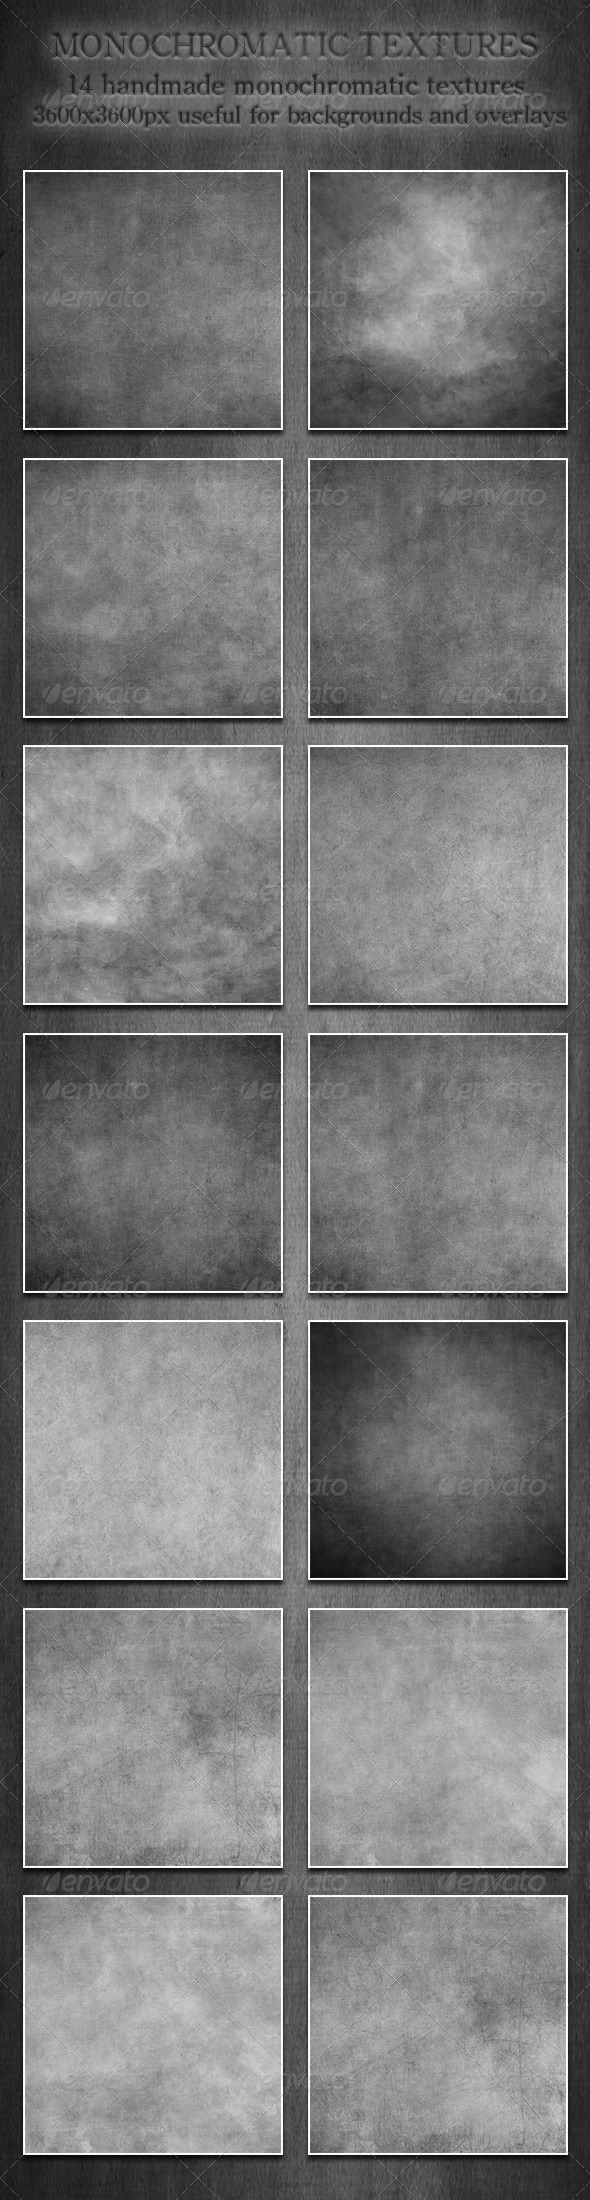 GraphicRiver Monochromatic Textures 5382521